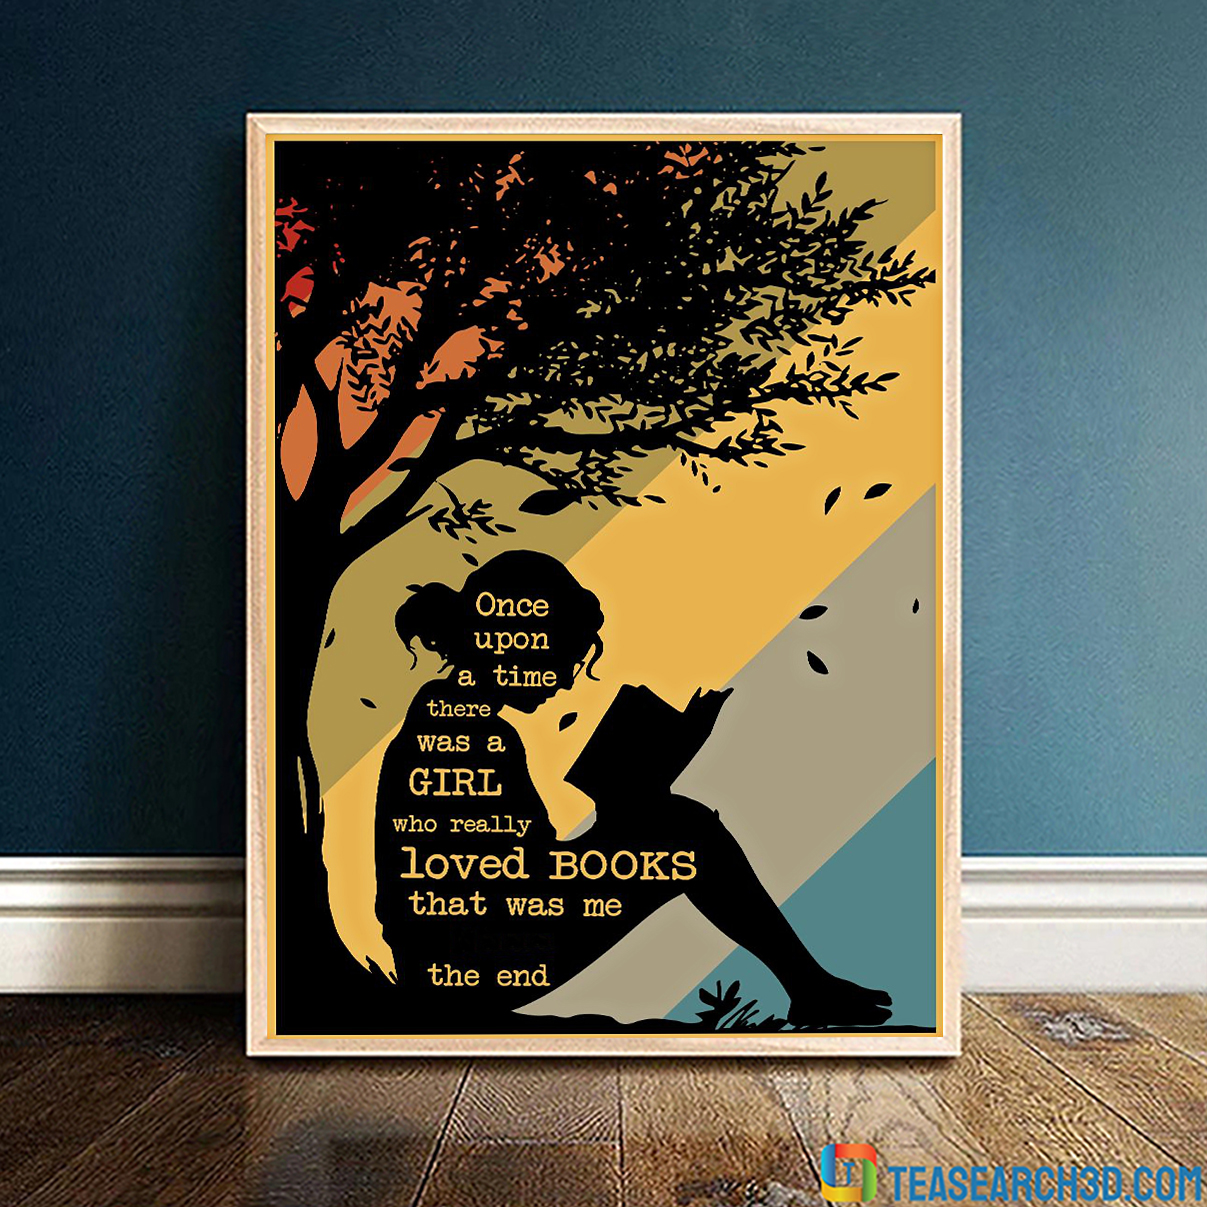 Personalized custom name once upon a time there was a girl who really loved books poster A4